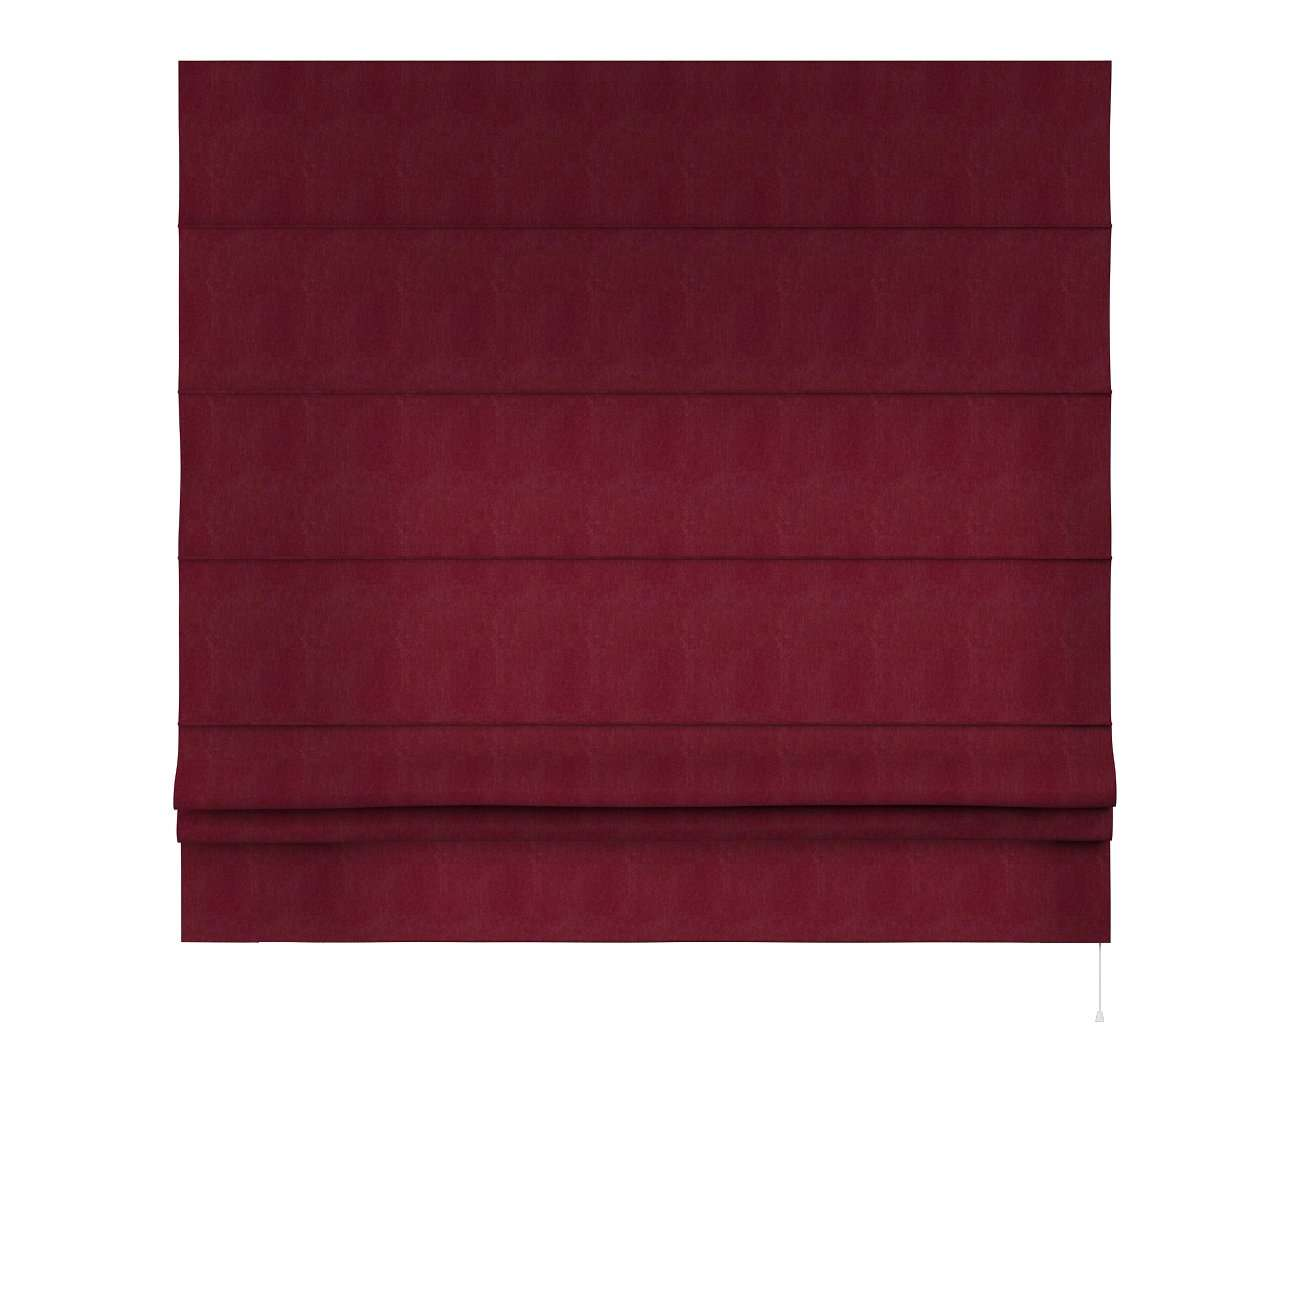 Padva roman blind  80 x 170 cm (31.5 x 67 inch) in collection Chenille, fabric: 702-19